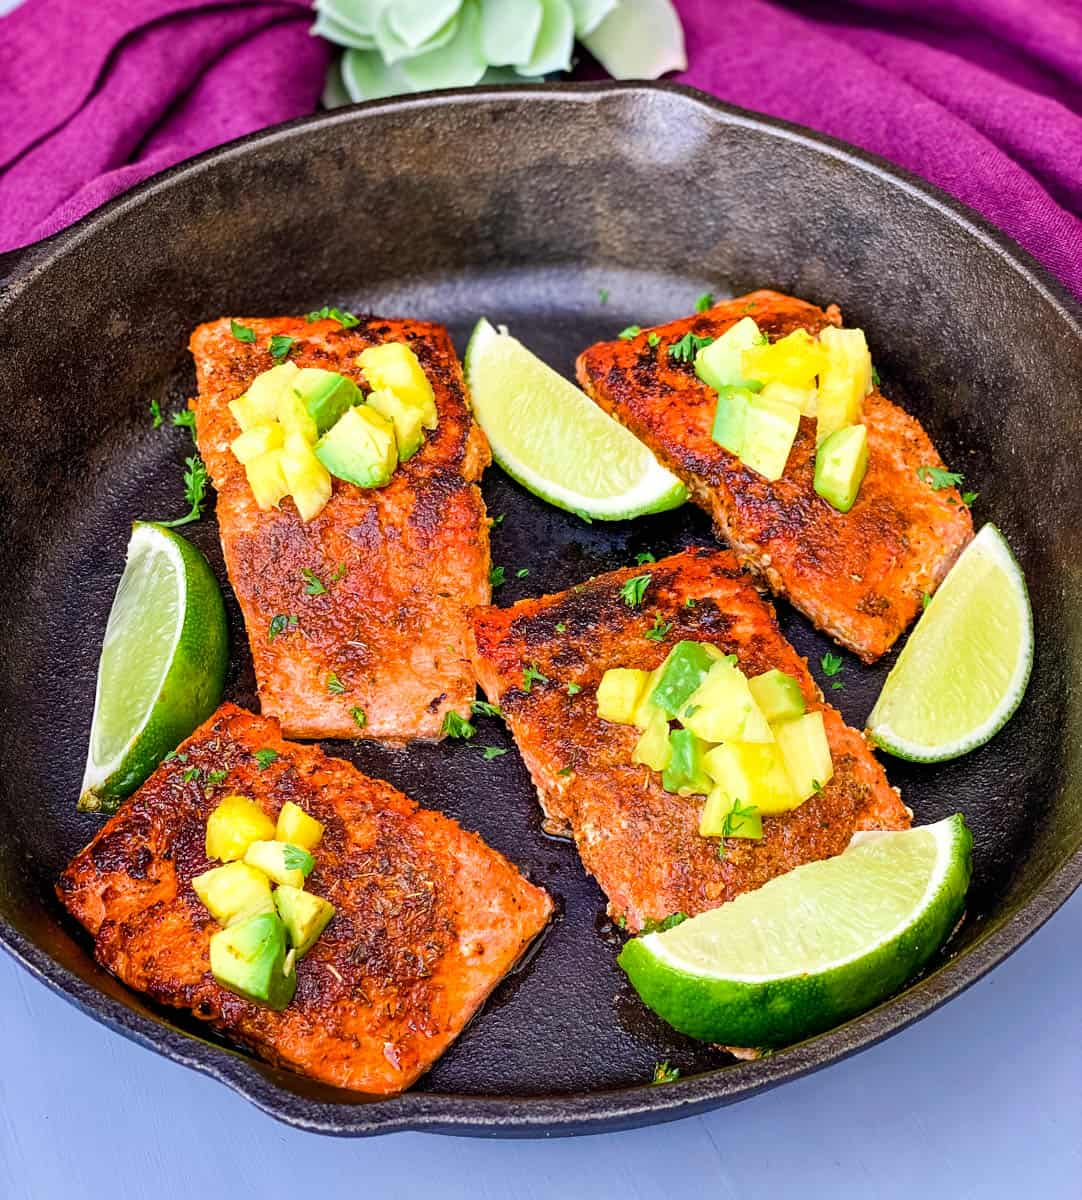 blackened salmon in a cast iron skillet topped with pineapple and avocado